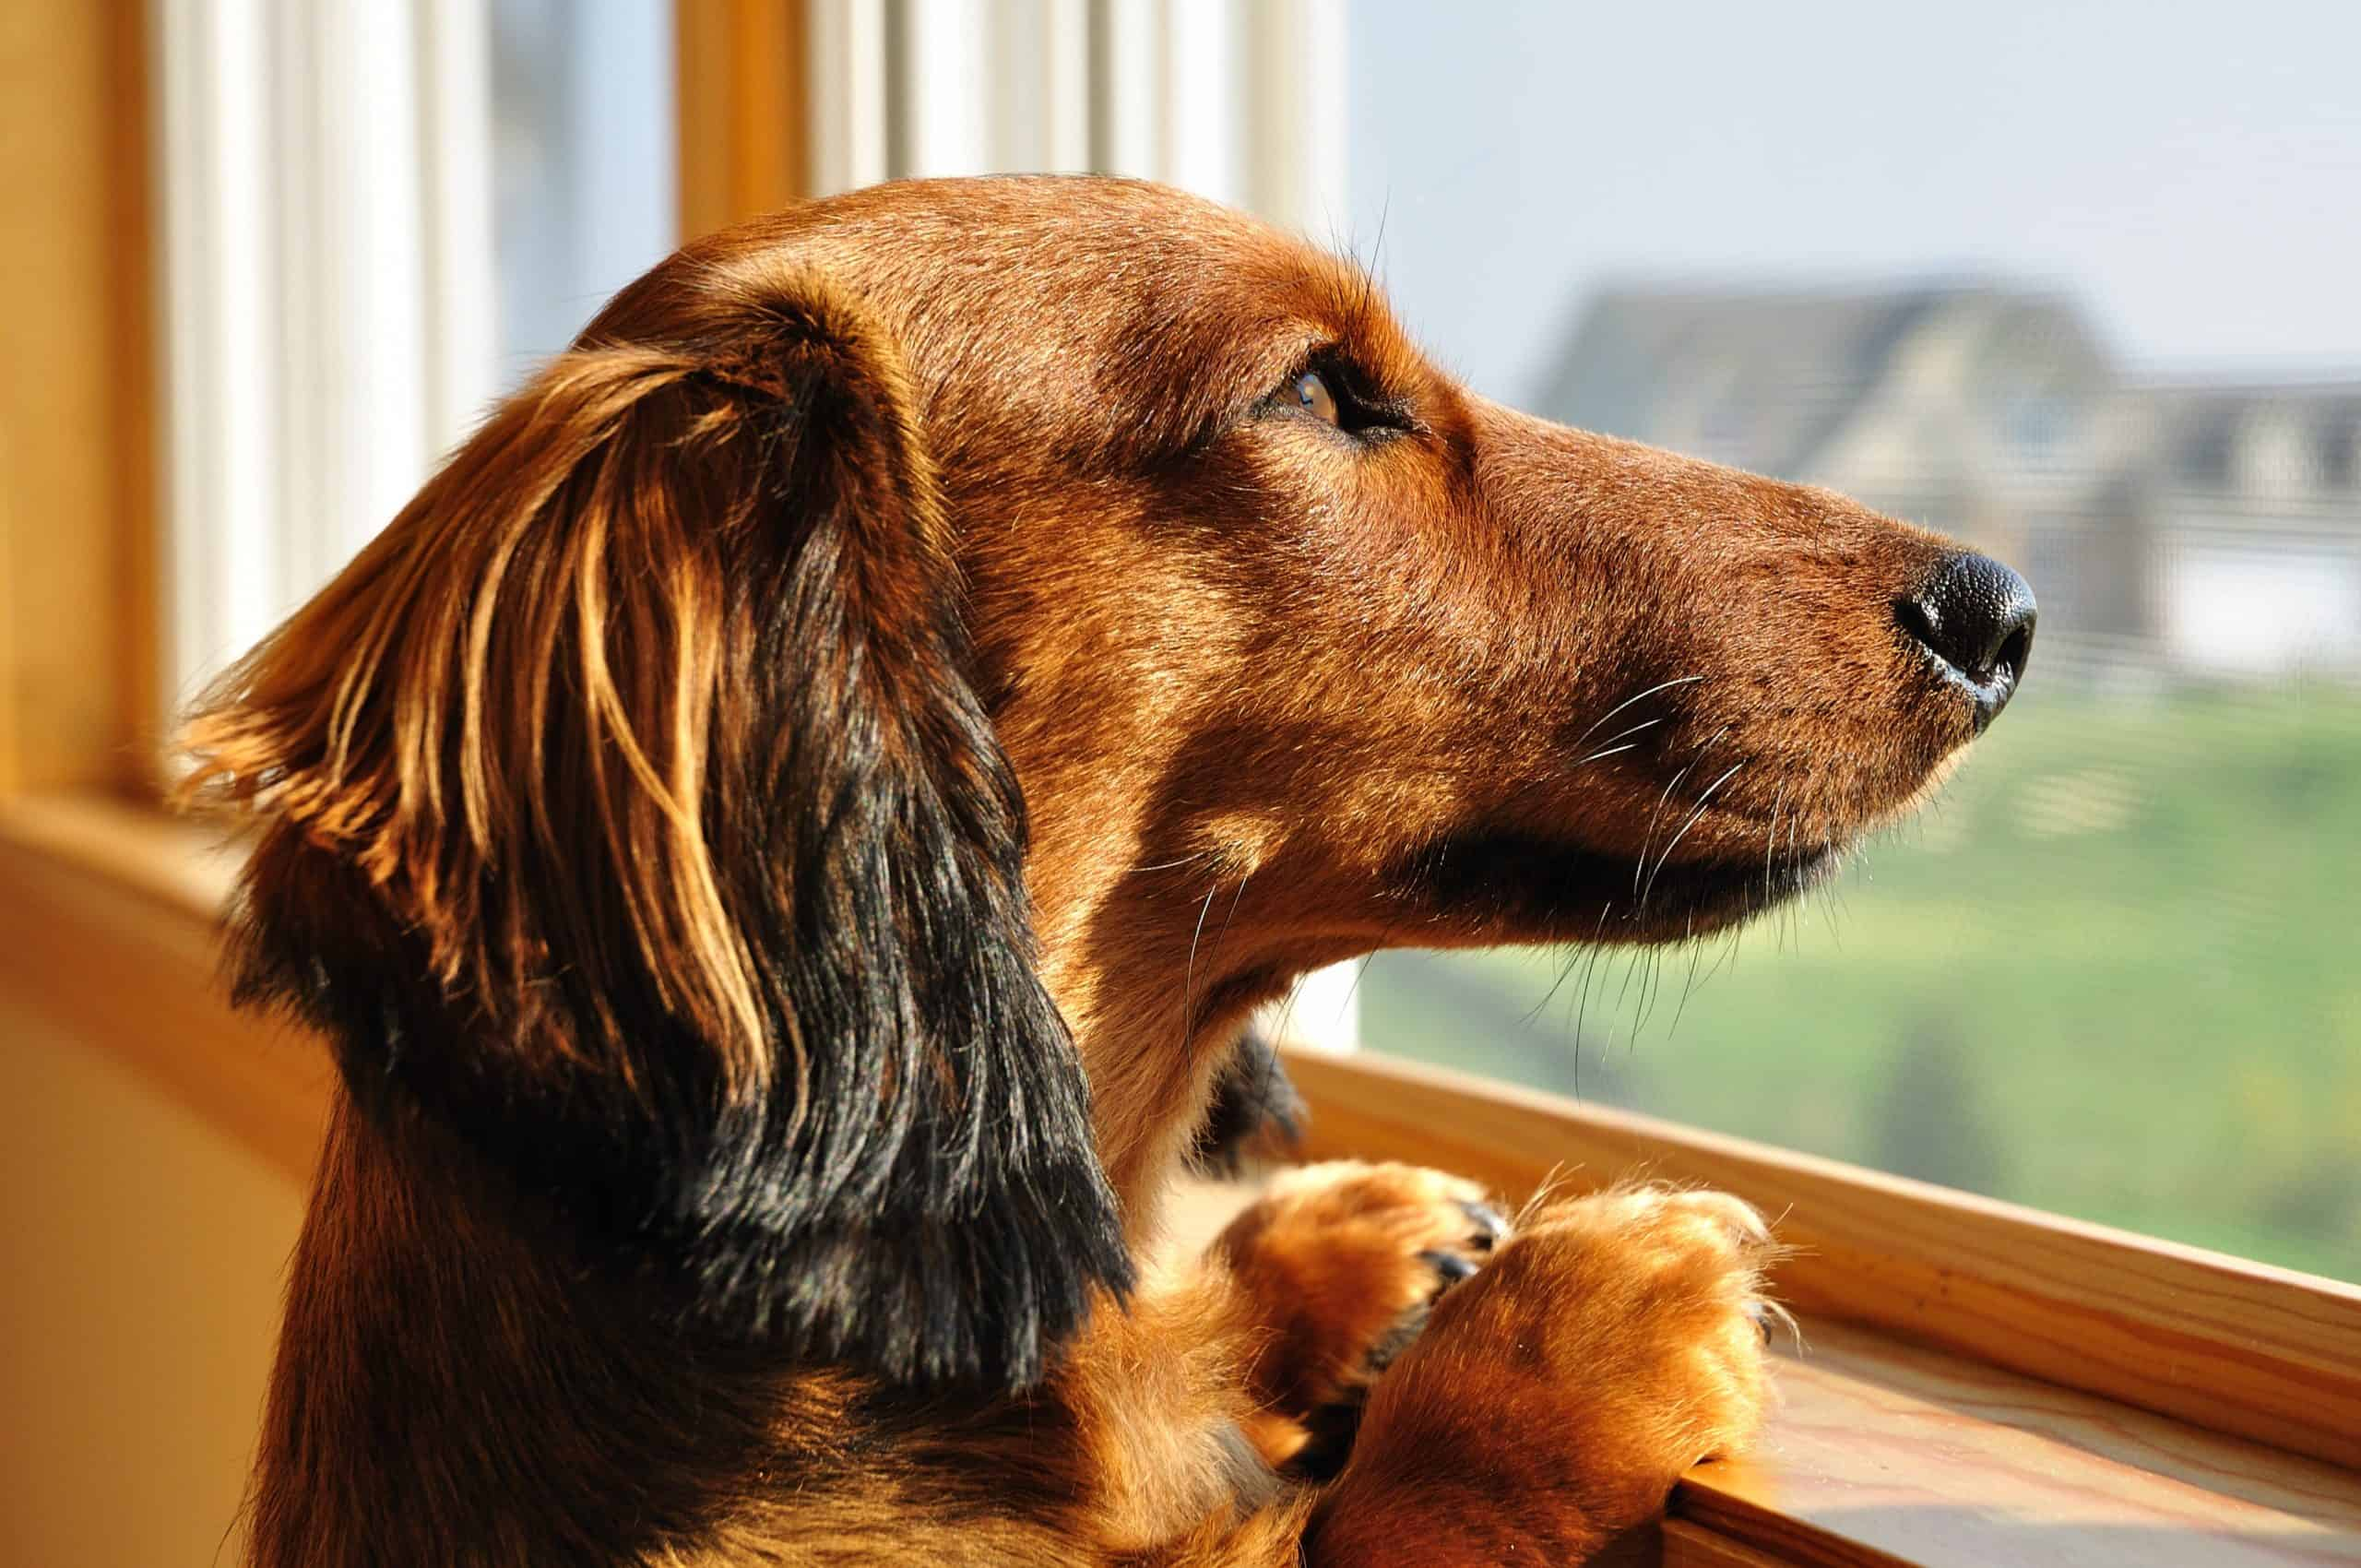 Dachshund looks out the window. Because they are companion animals, most dogs want to spend time with their humans and struggle when left home alone for extended periods.